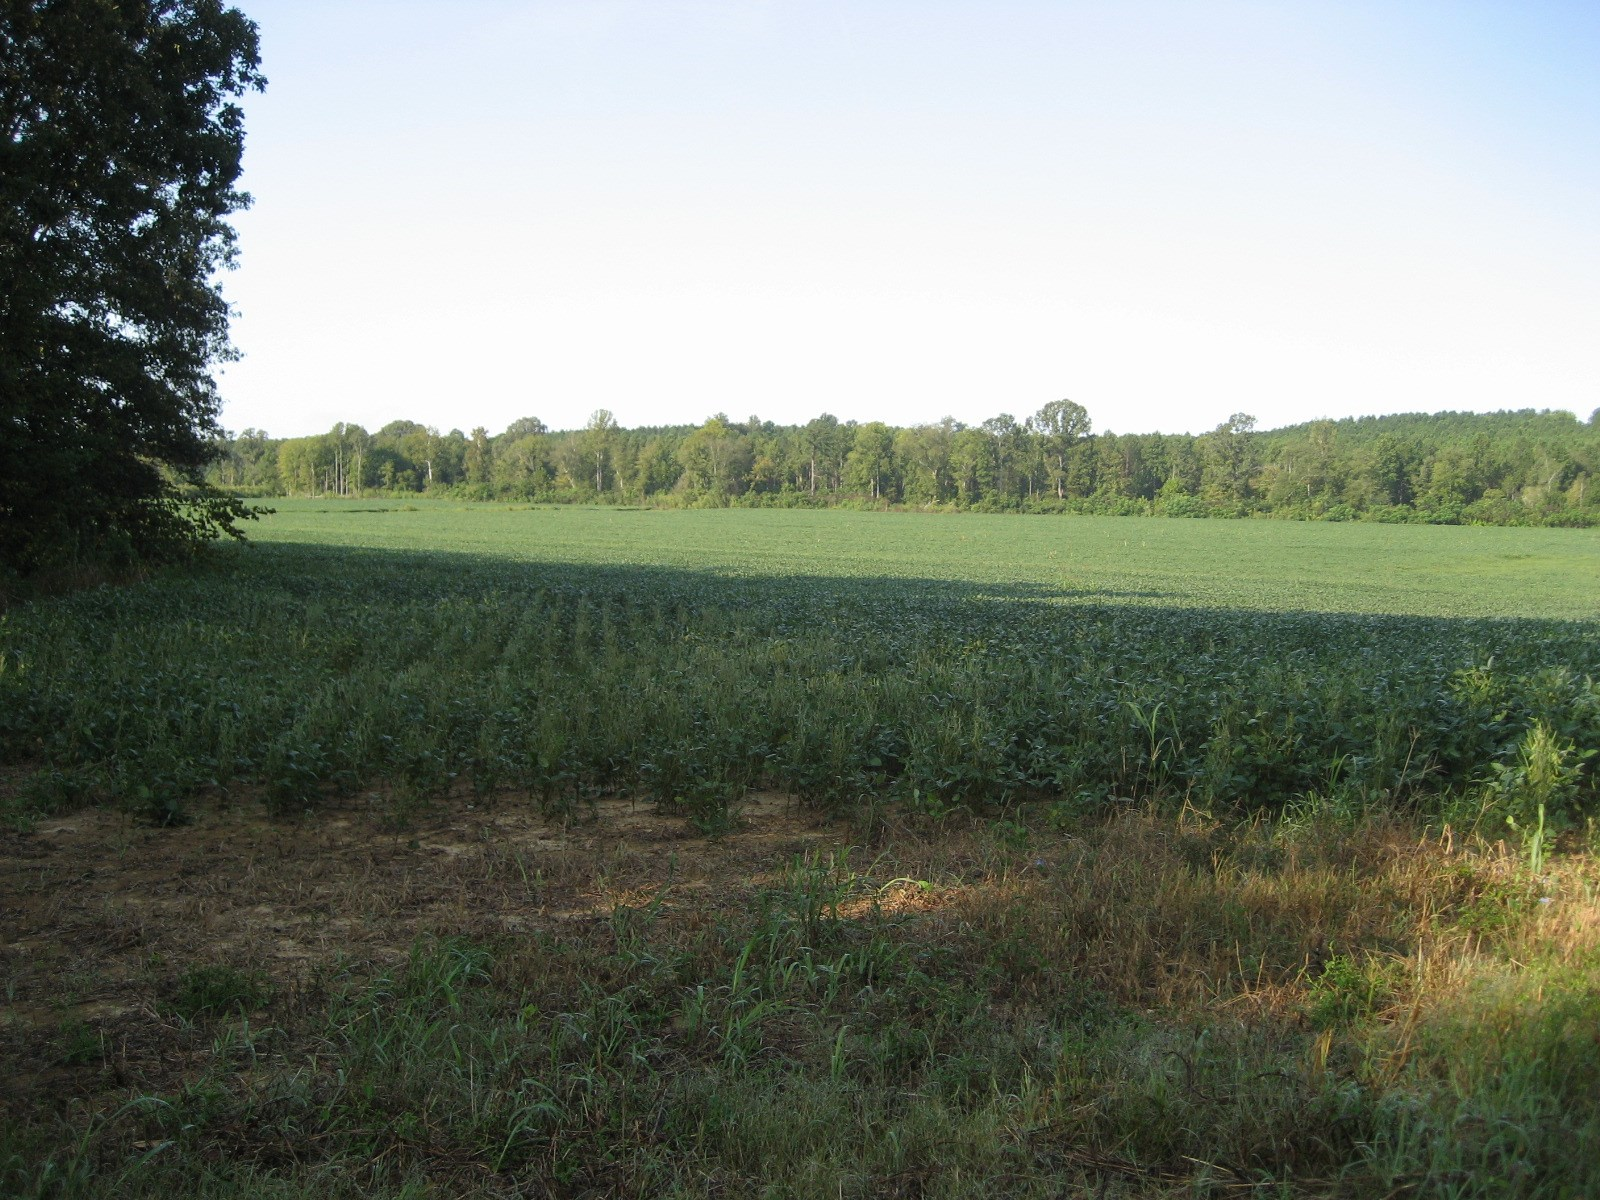 ROW CROP LAND FOR SALE IN TN - HUNTING LAND